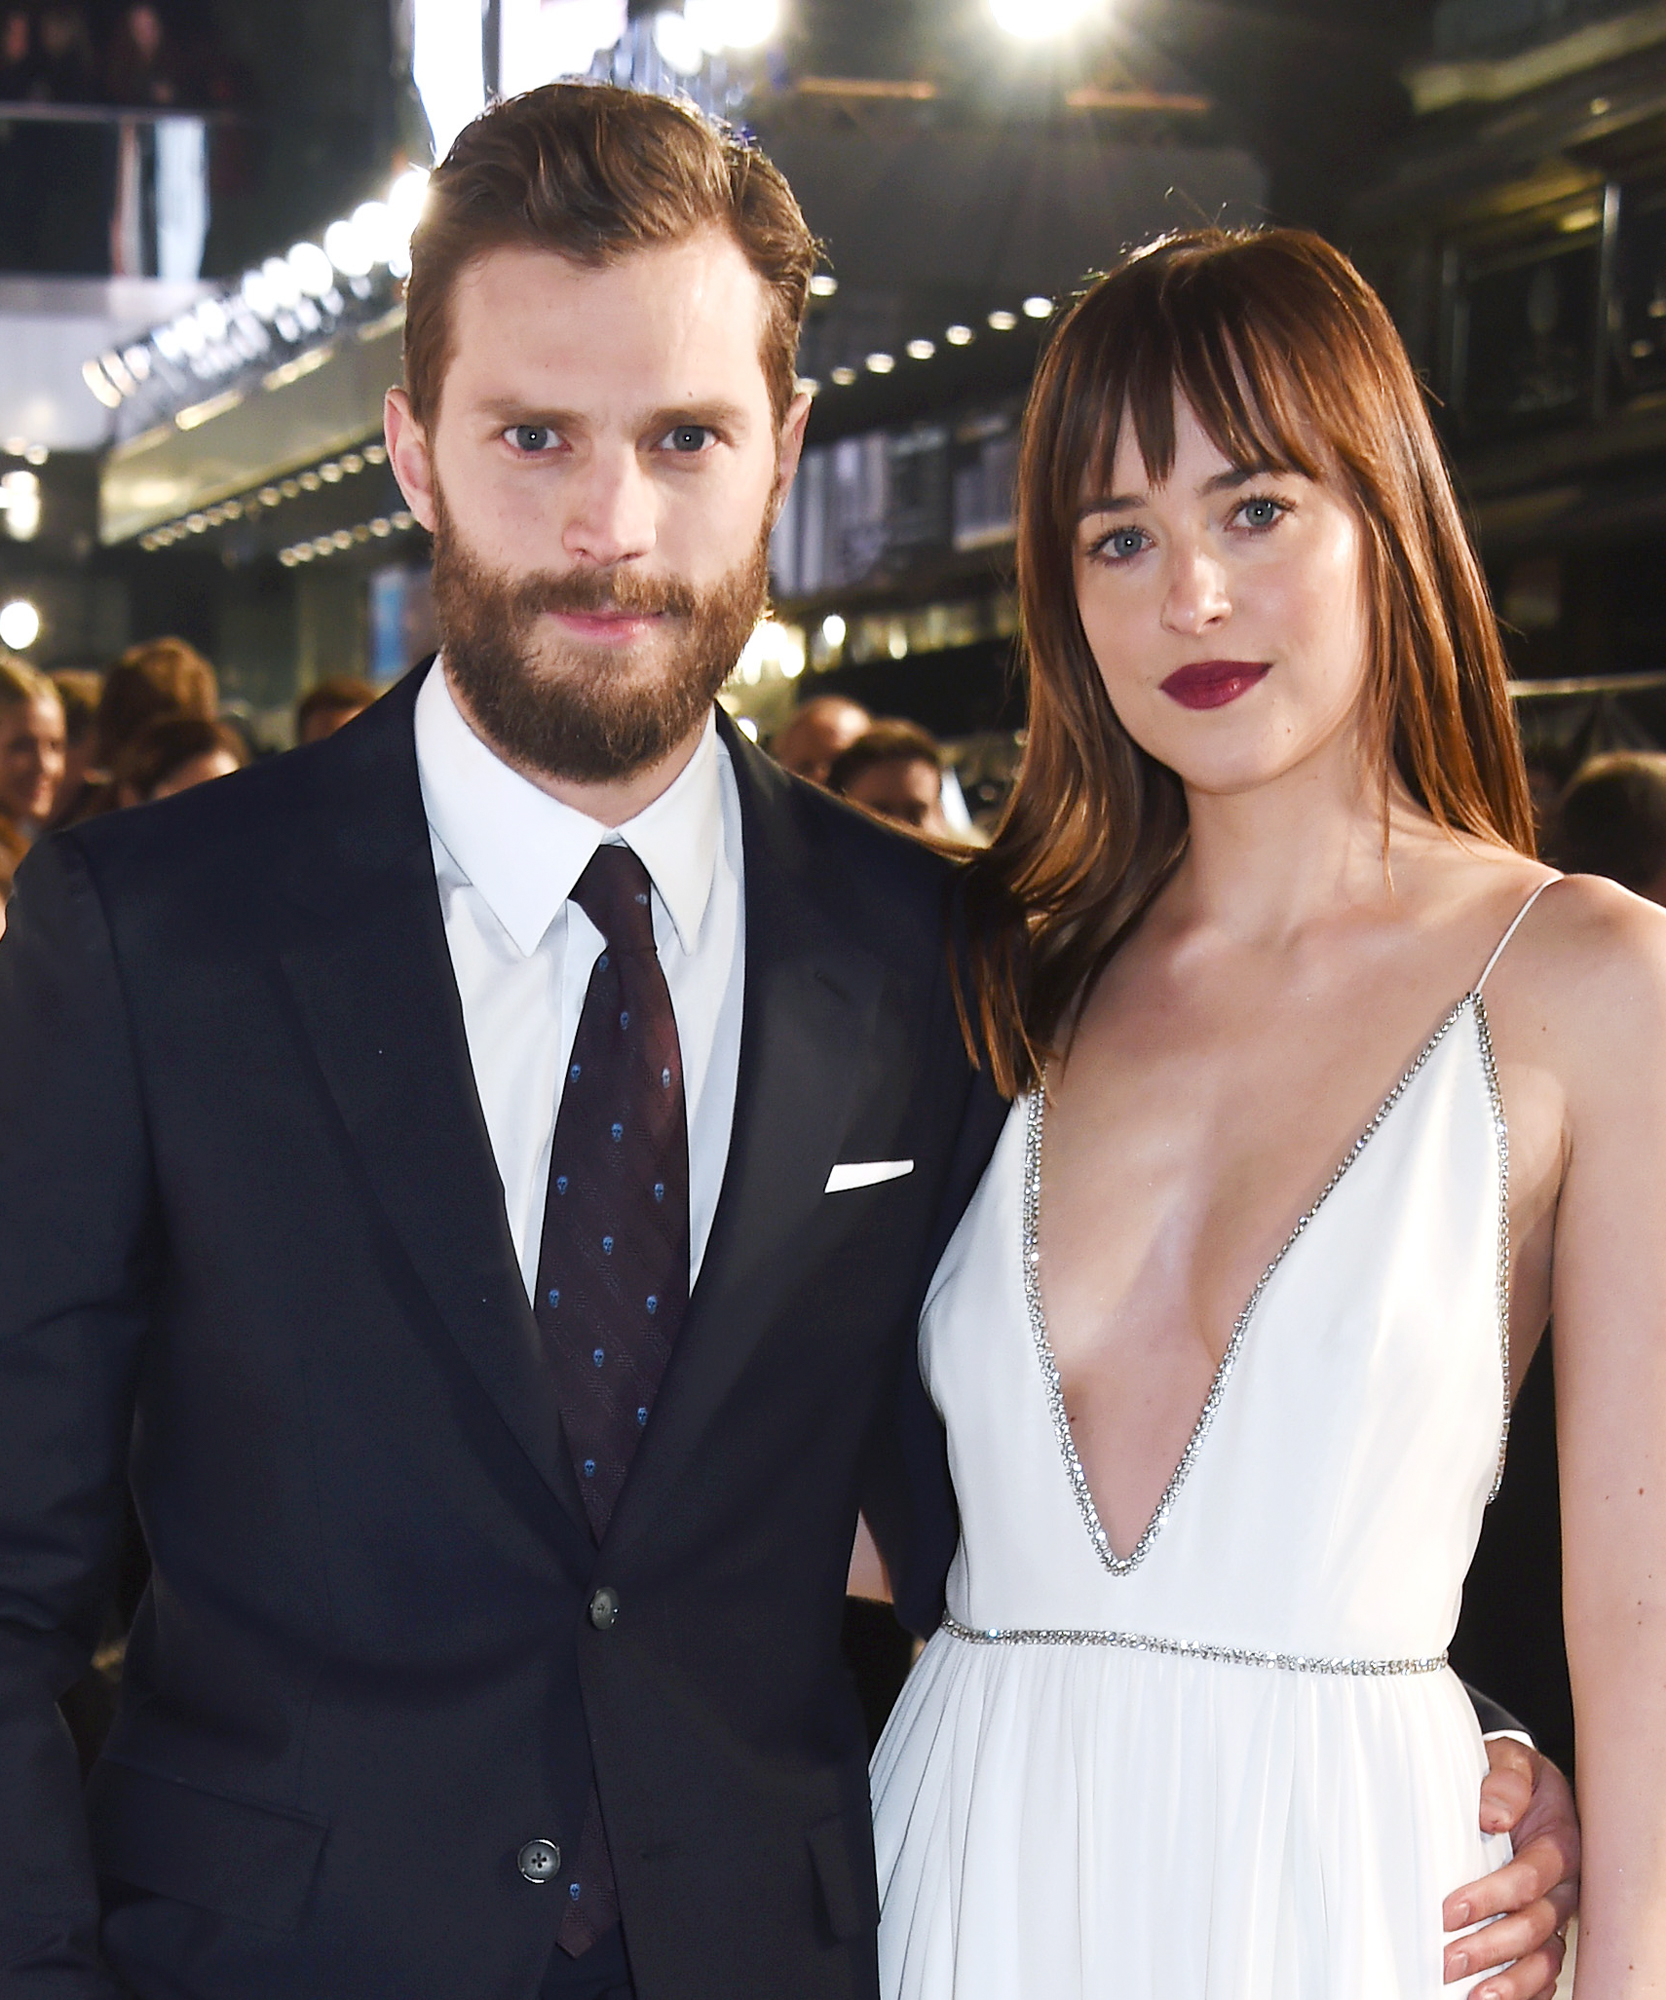 Jamie Dornan (L) and Dakota Johnson attend the UK Premiere of 'Fifty Shades Of Grey' at Odeon Leicester Square on February 12, 2015 in London, England.